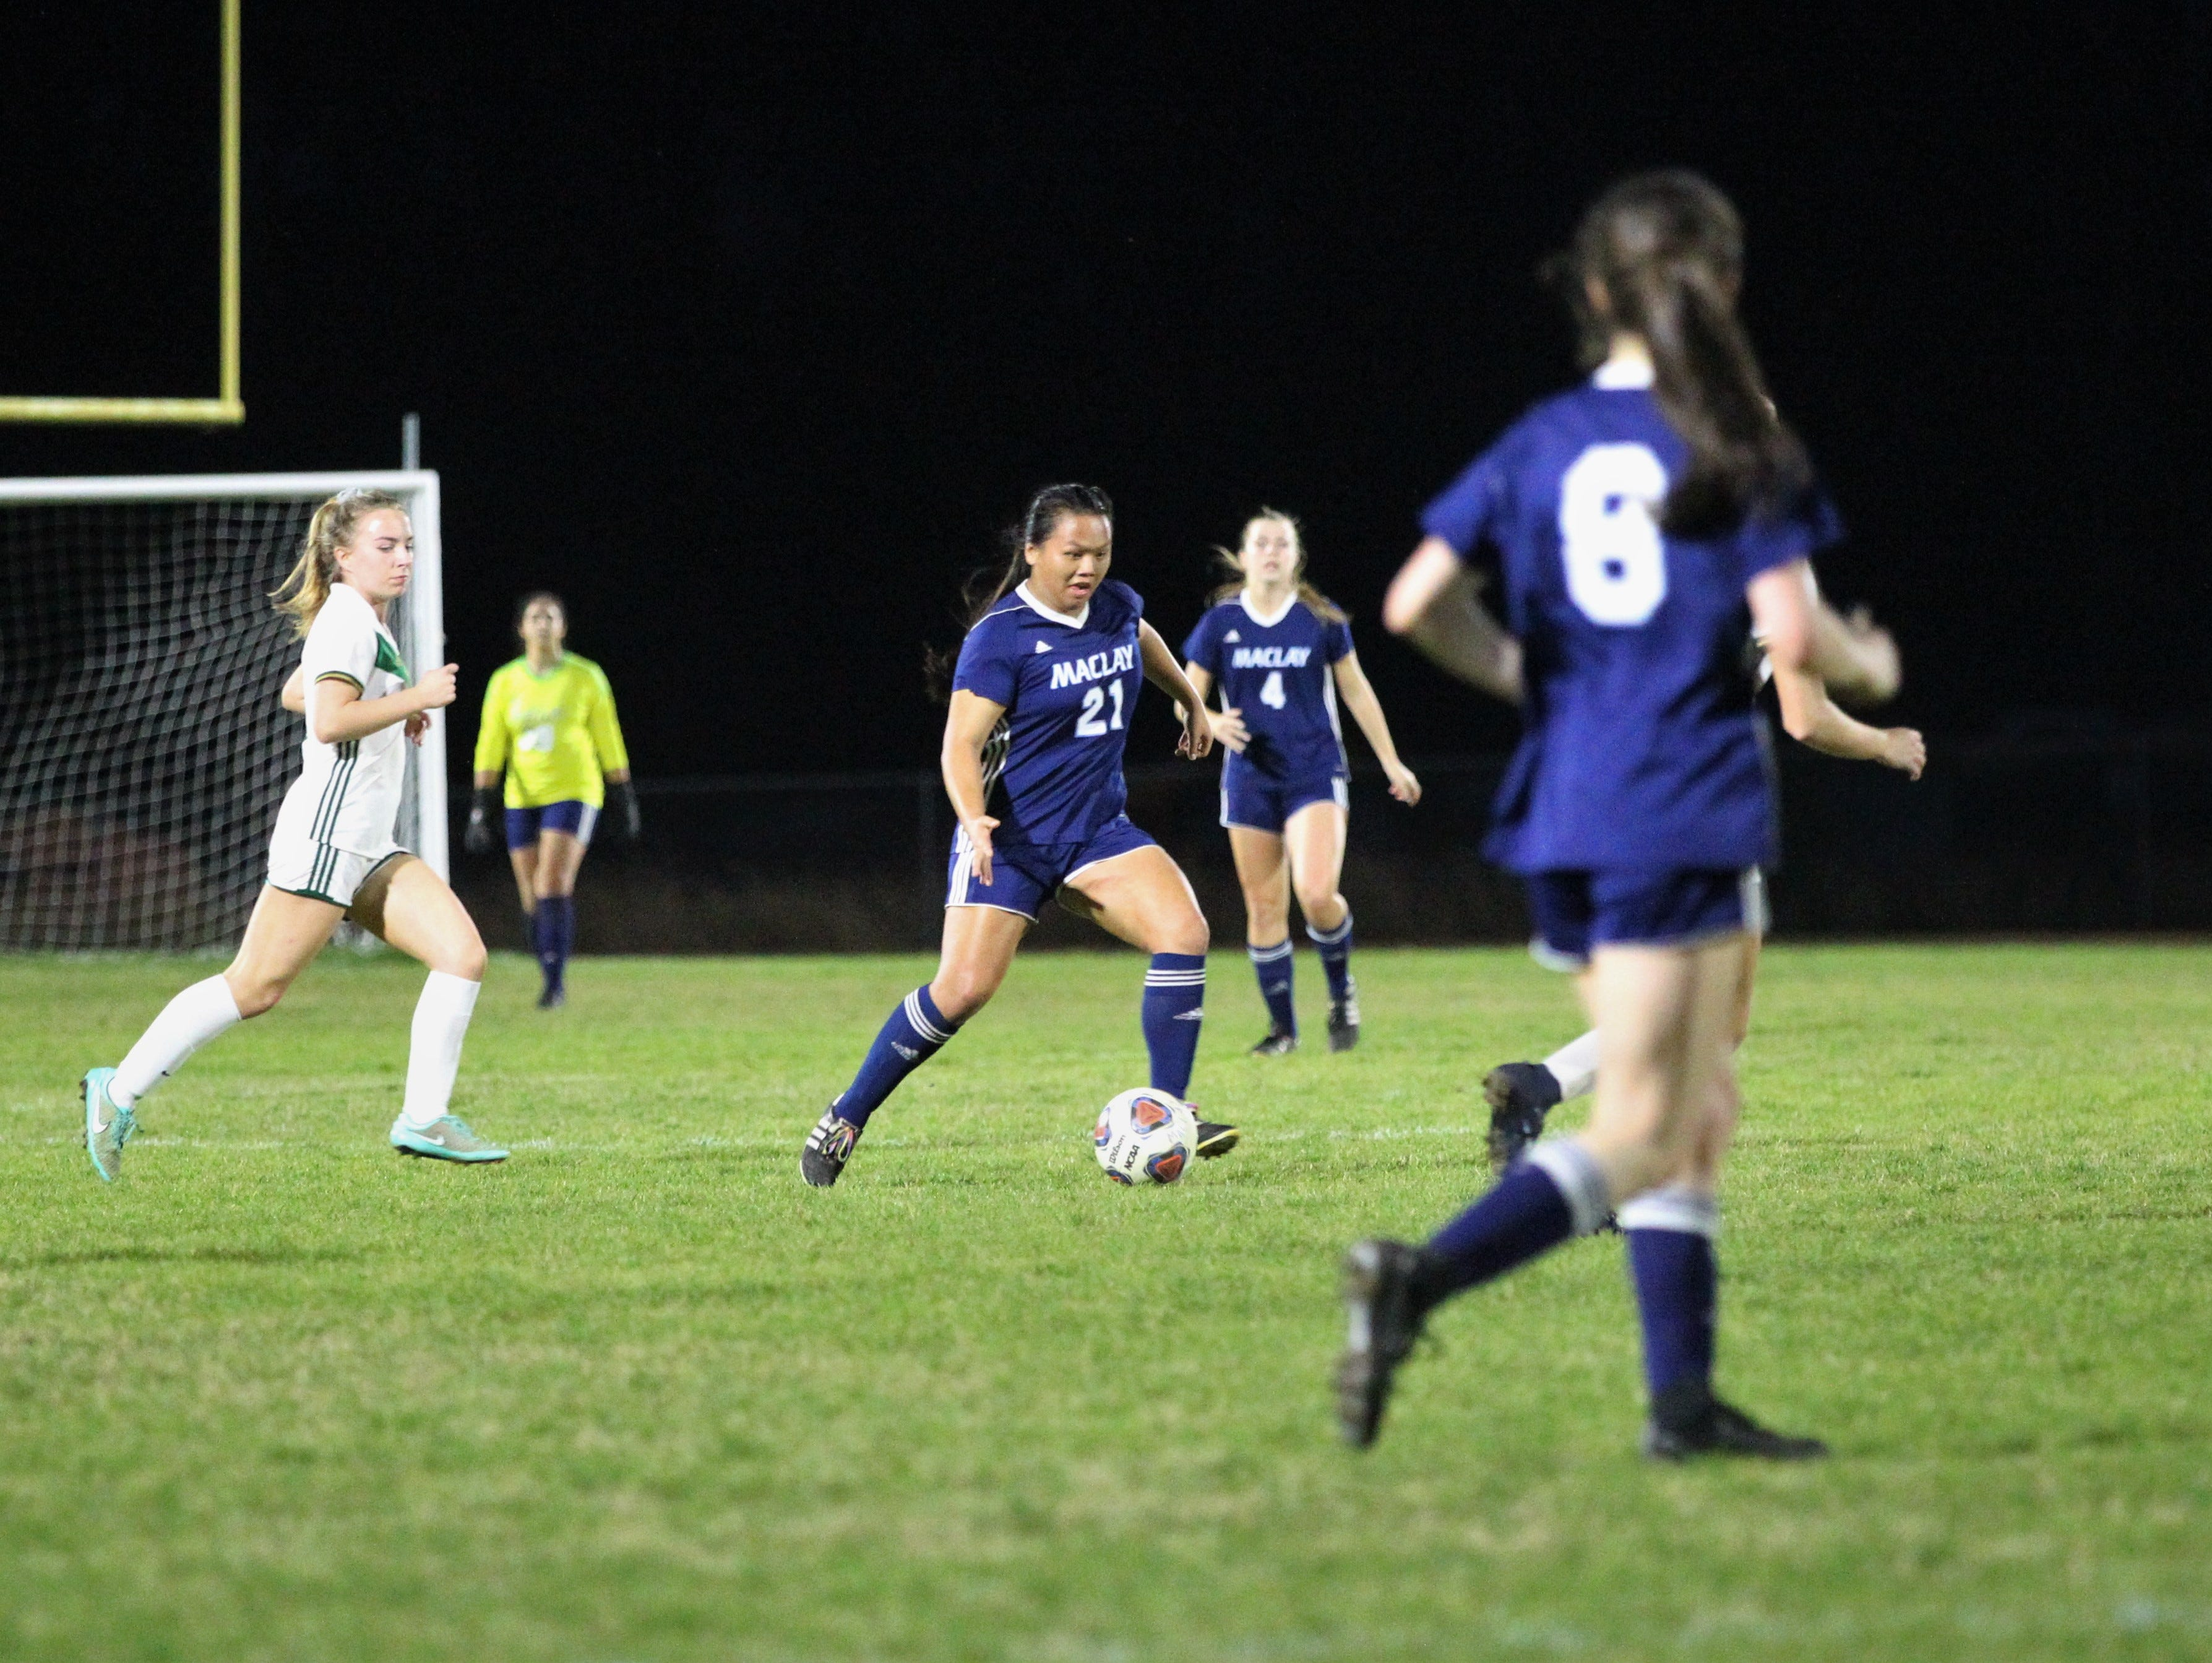 Maclay's Tayley Cotton looks for a pass as Maclay's girls soccer team beat St. Joseph Academy 4-0 in a Region 1-1A quarterfinal on Jan. 5, 2019.